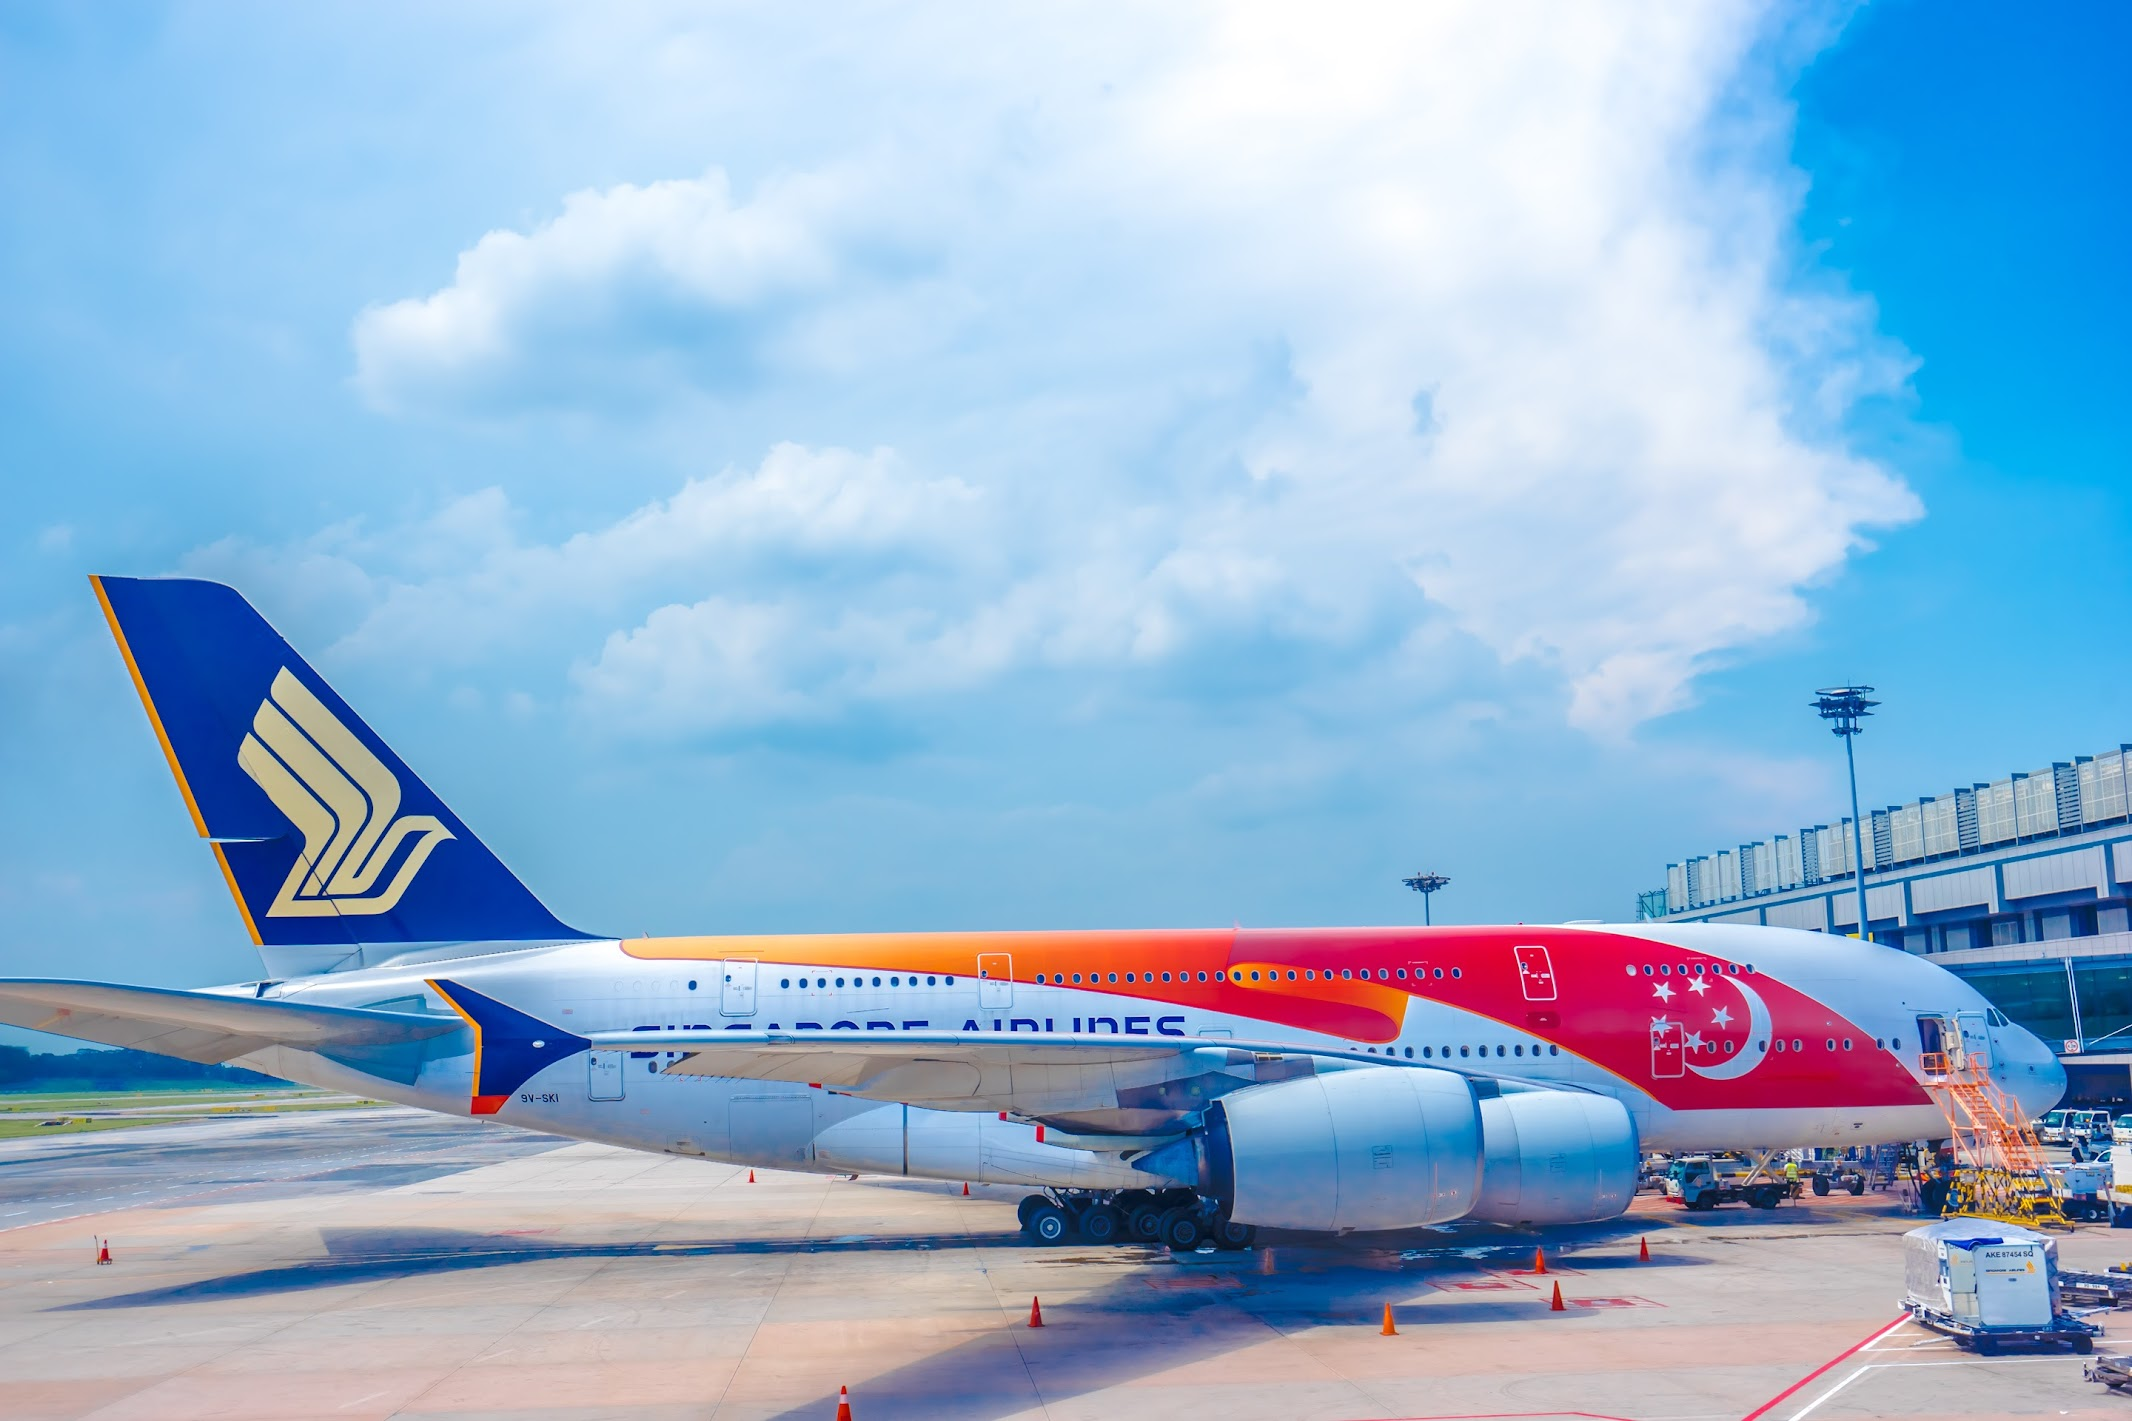 Singapore Airlines special aircraft